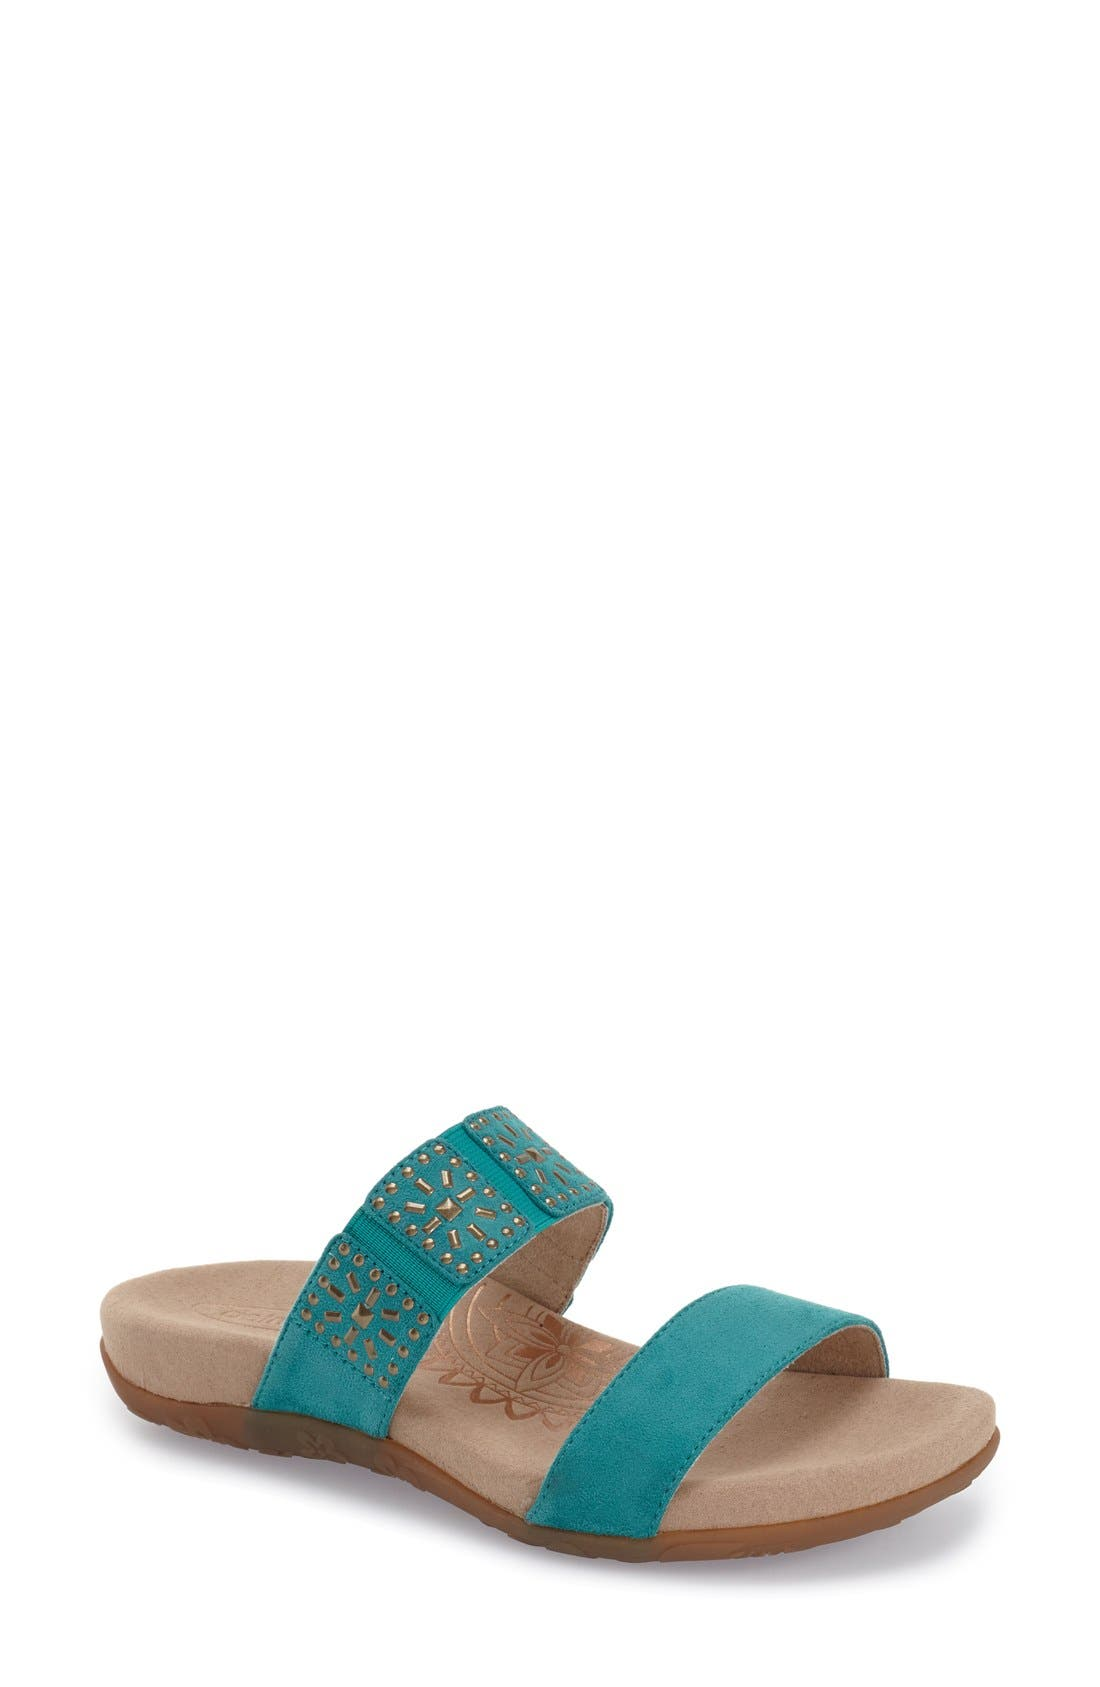 Aetrex 'Macy' Double Band Slide Sandal (Women)